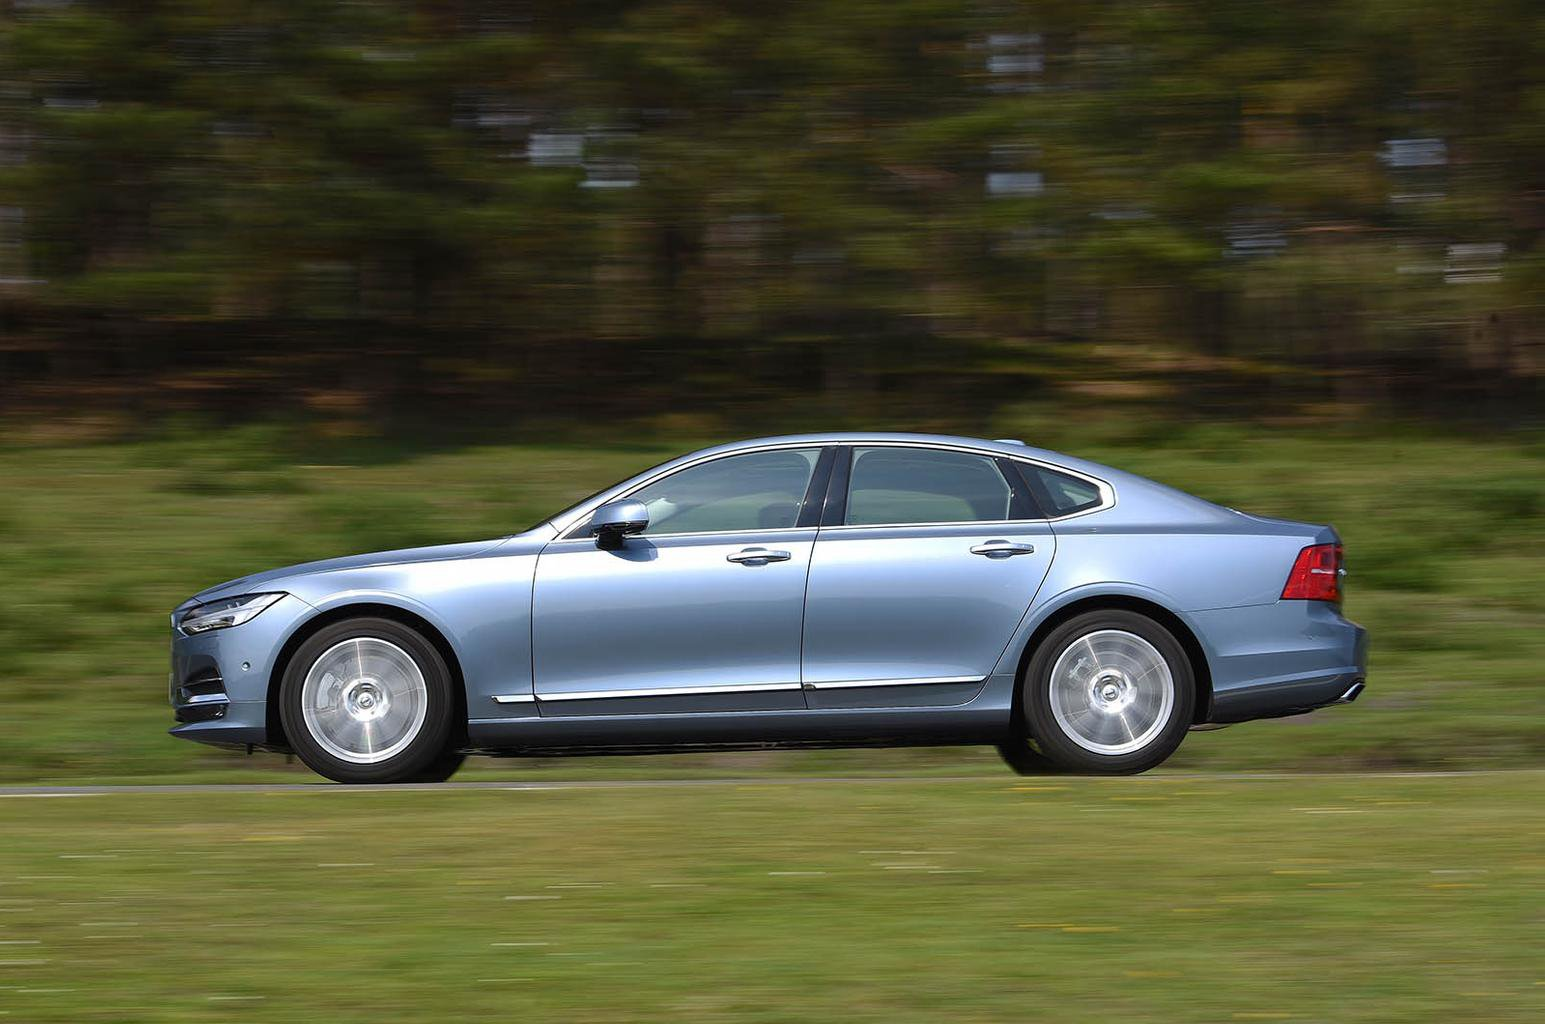 2016 Volvo S90 D4 review